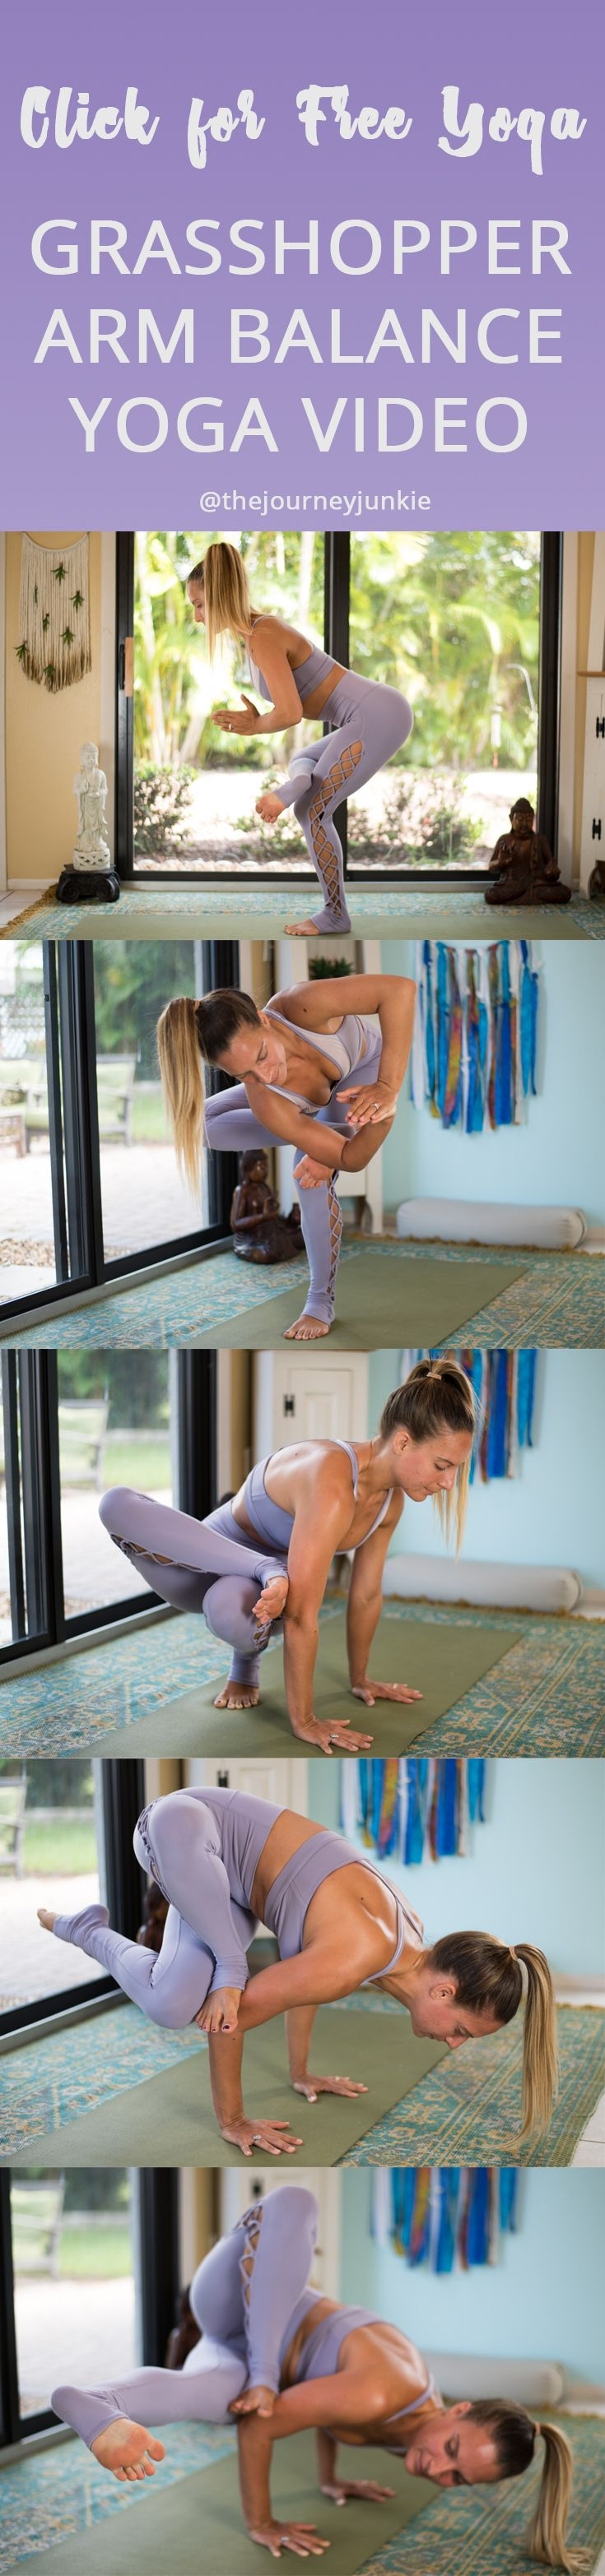 Grasshopper Yoga Pose Video: Twist + Hip Opener Flow - Pin now, unroll your mat now, learn grasshopper pose now!